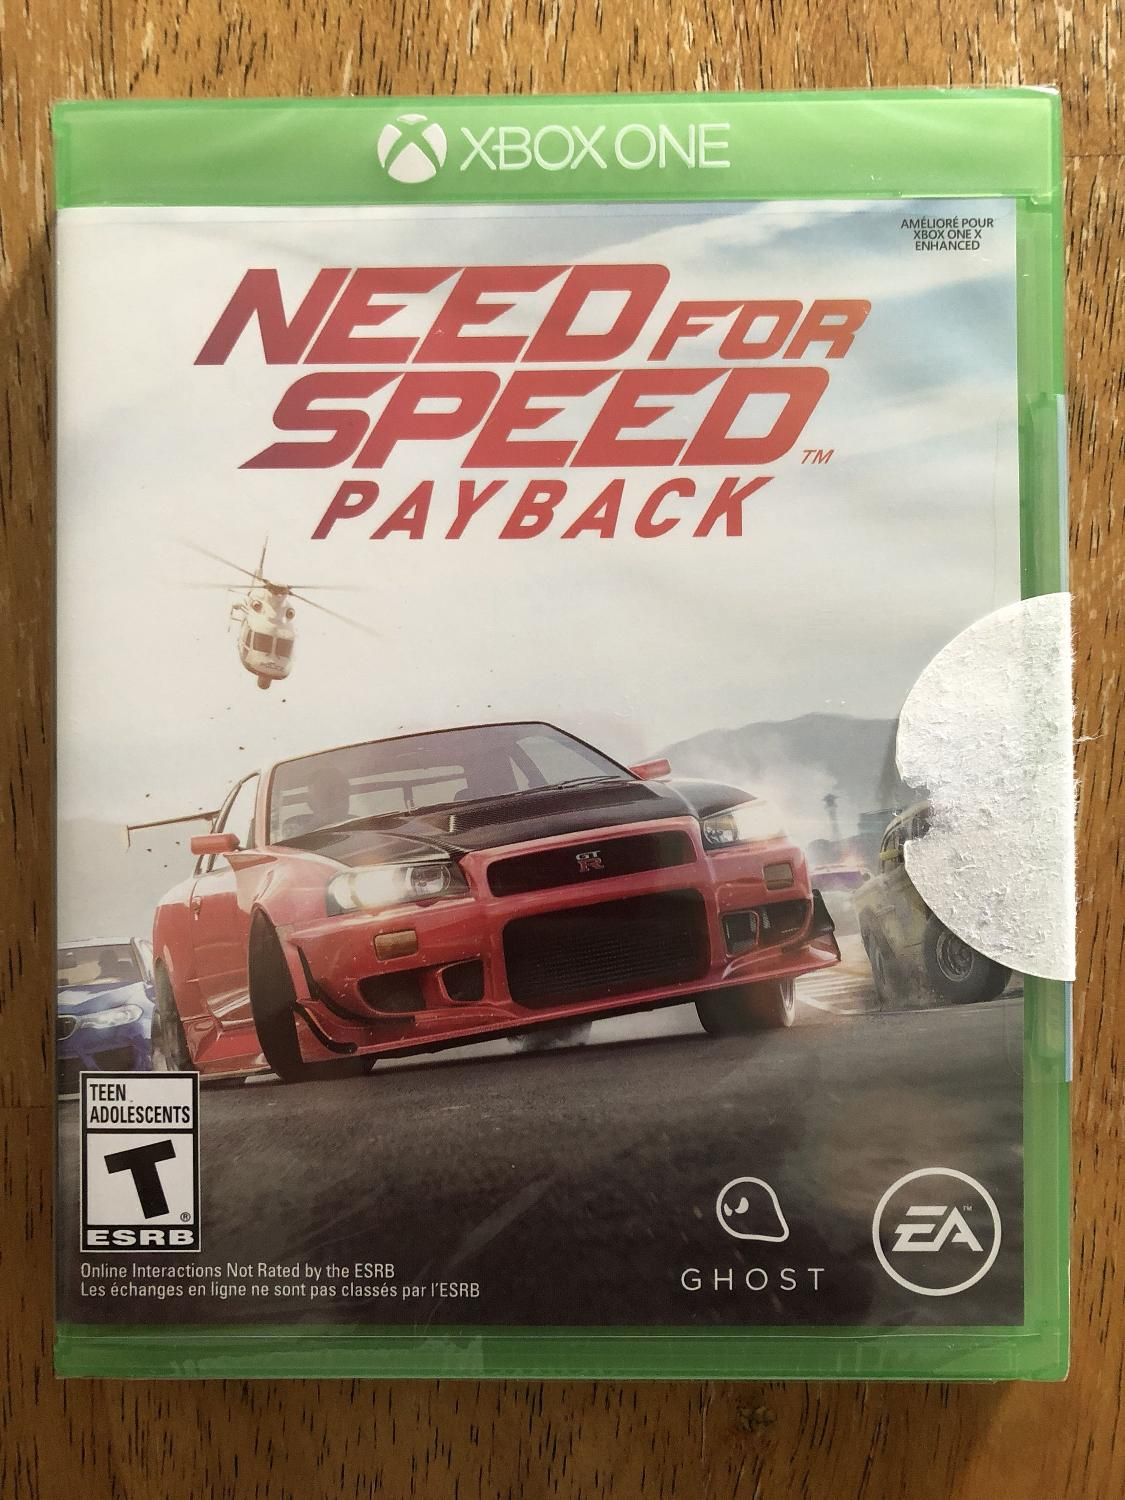 Find More Need For Speed Payback Sale At Up To 90 Off Dollard  Xbox One Des Ormeaux Qc